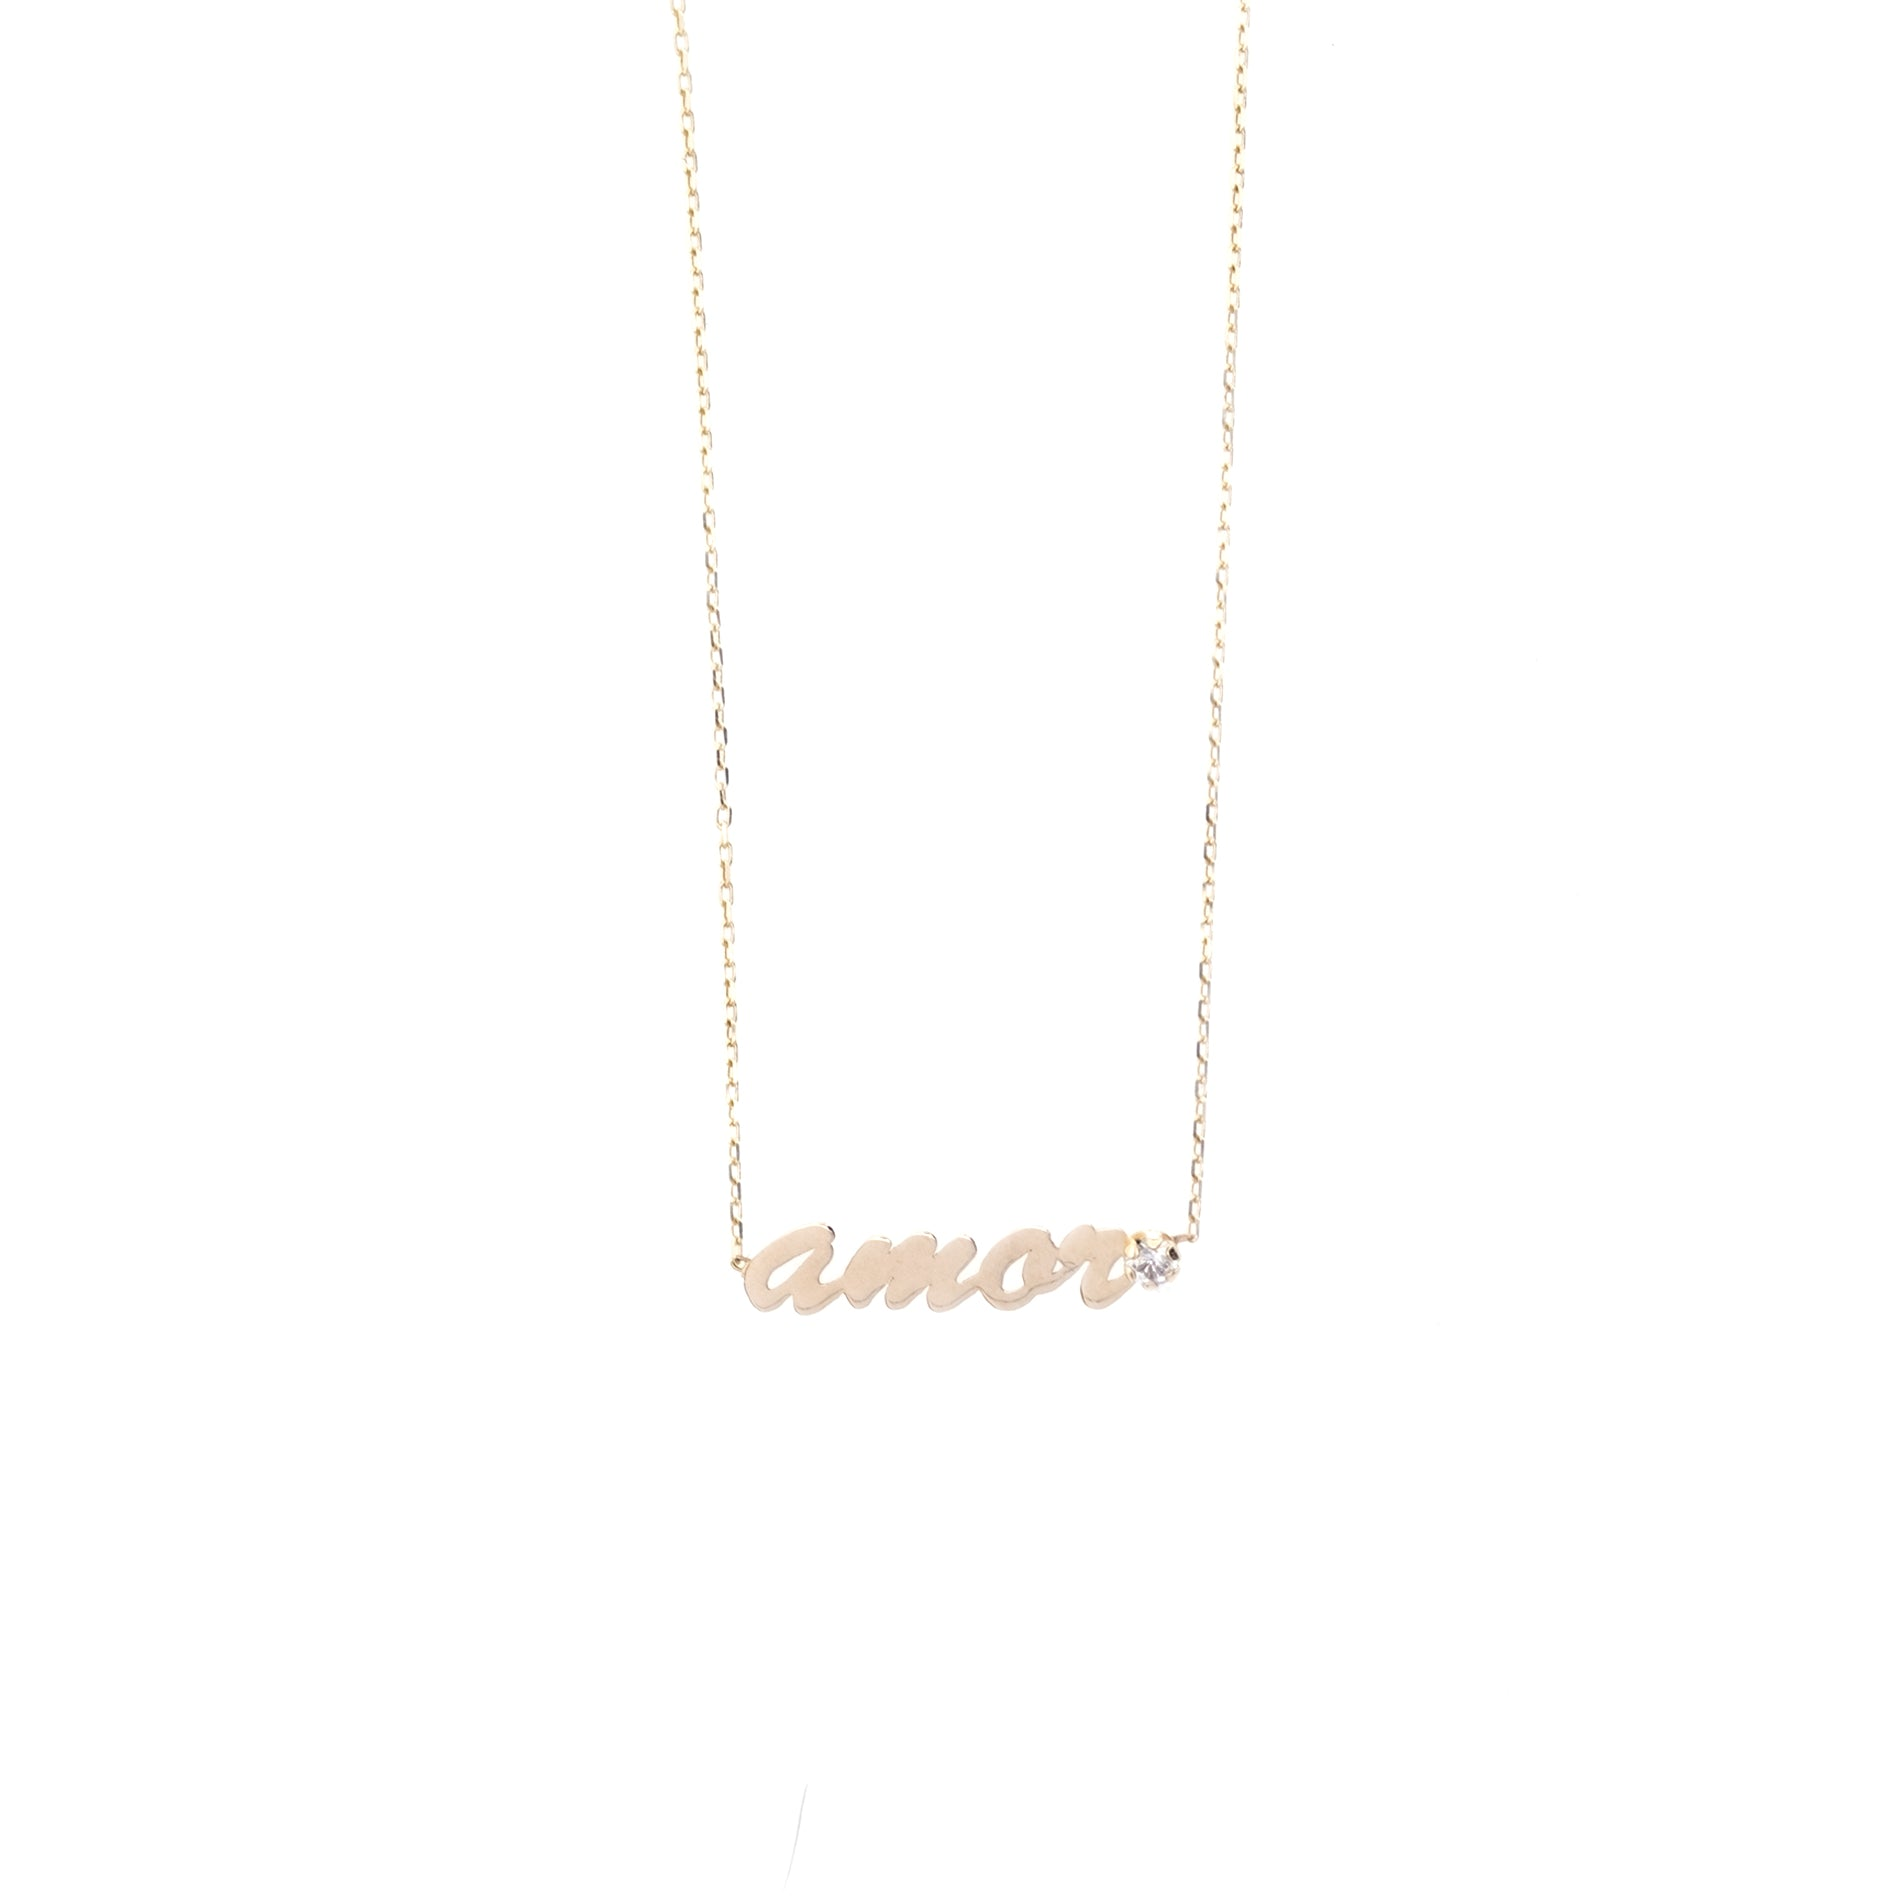 14K YELLOW GOLD AMOR NECKLACE